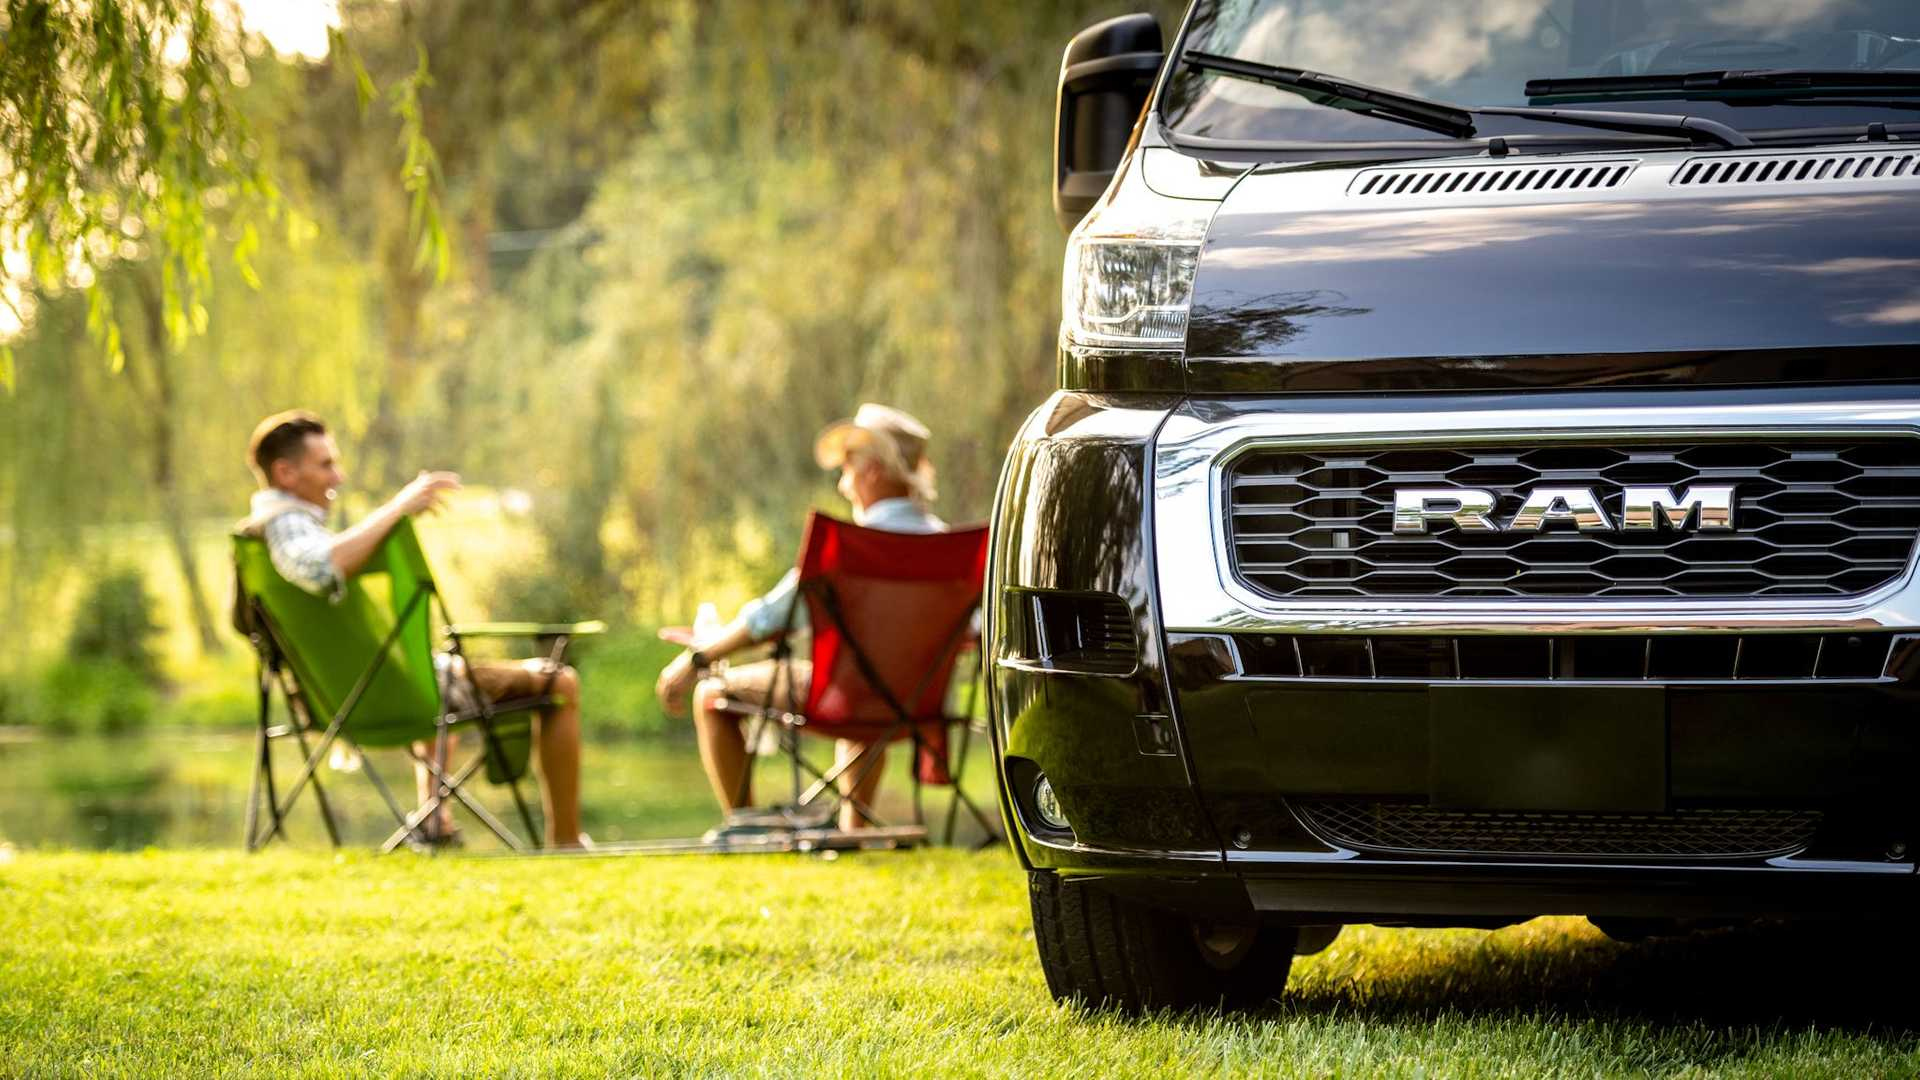 A campervan is much more versatile than a full-blown motorhome in terms of passability and parking opportunities, but living in a cramped space can be frustrating for some. Ultimate Toys seems to have addressed it perfectly in its latest project.